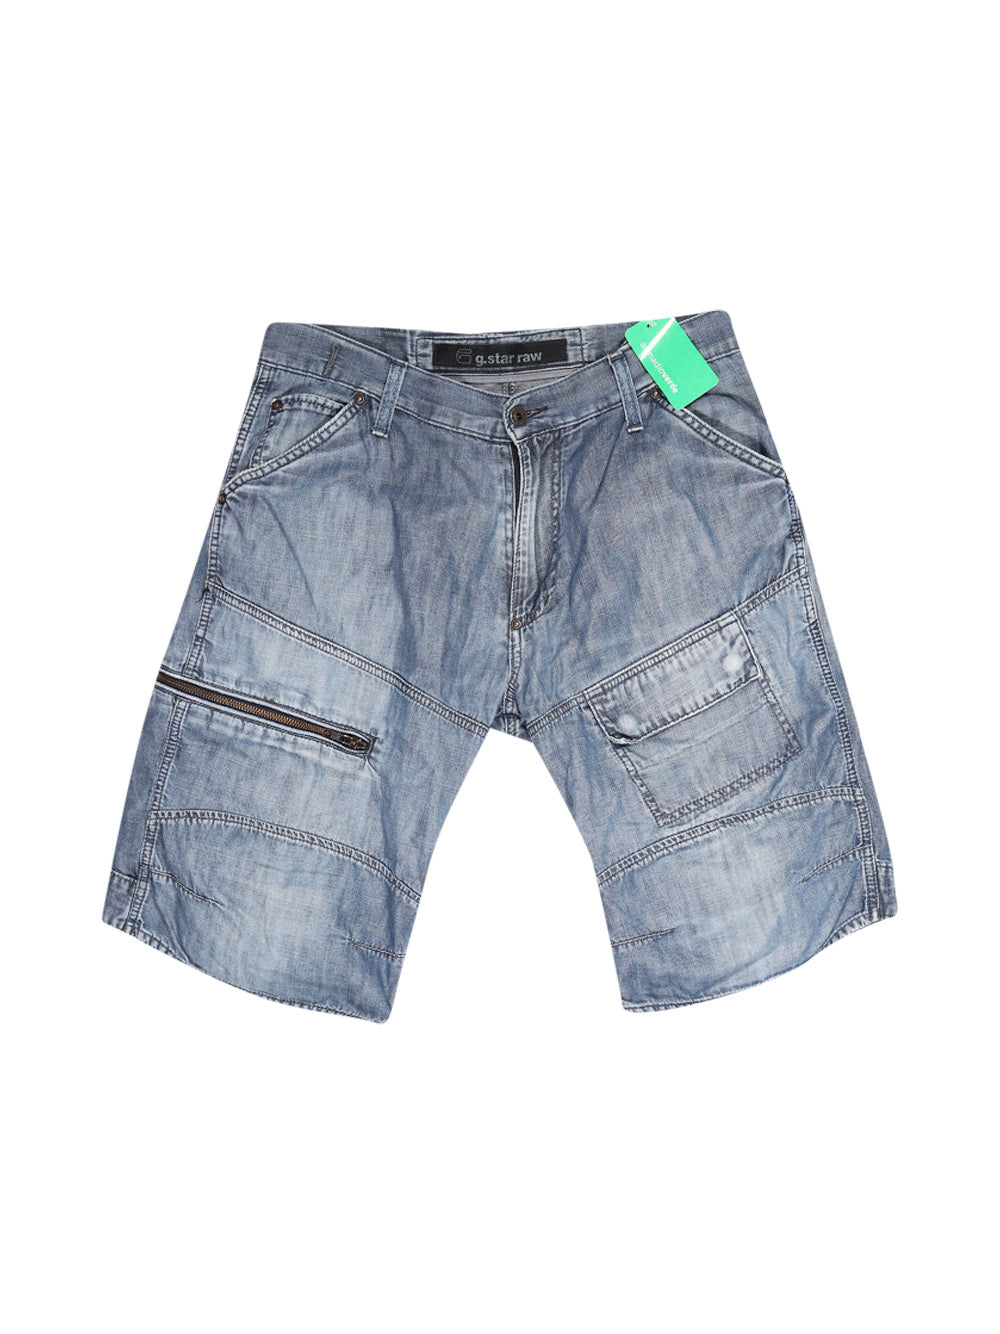 Front photo of Preloved G.STAR RAW Blue Man's shorts - size 40/L